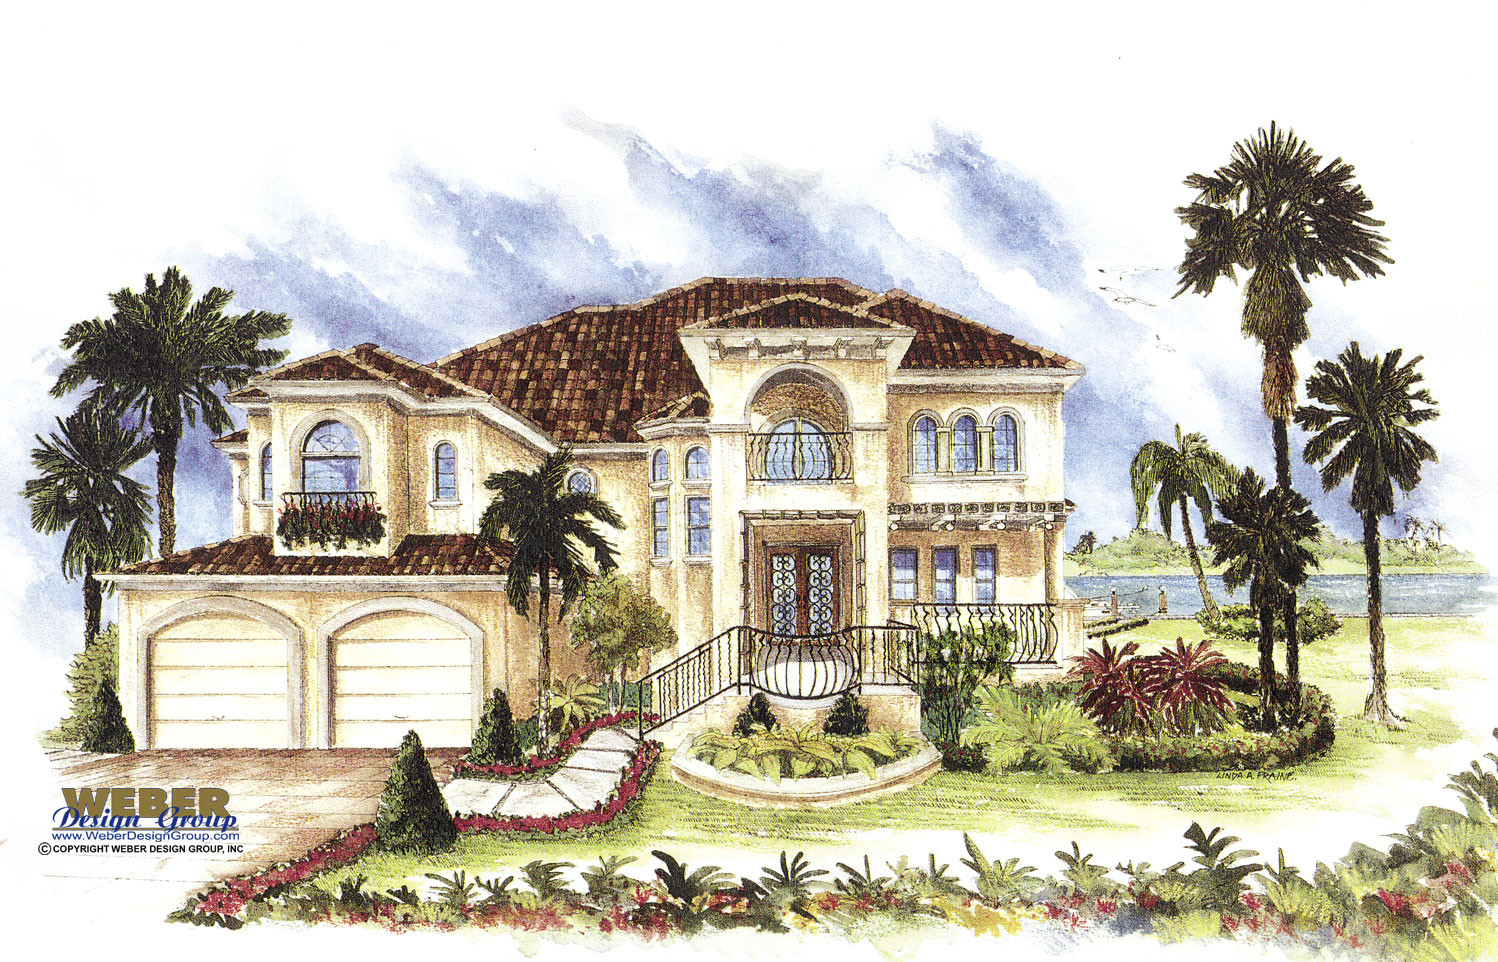 Mediterranean House Plan: 2 Story Luxury Home floor Plan with Pool